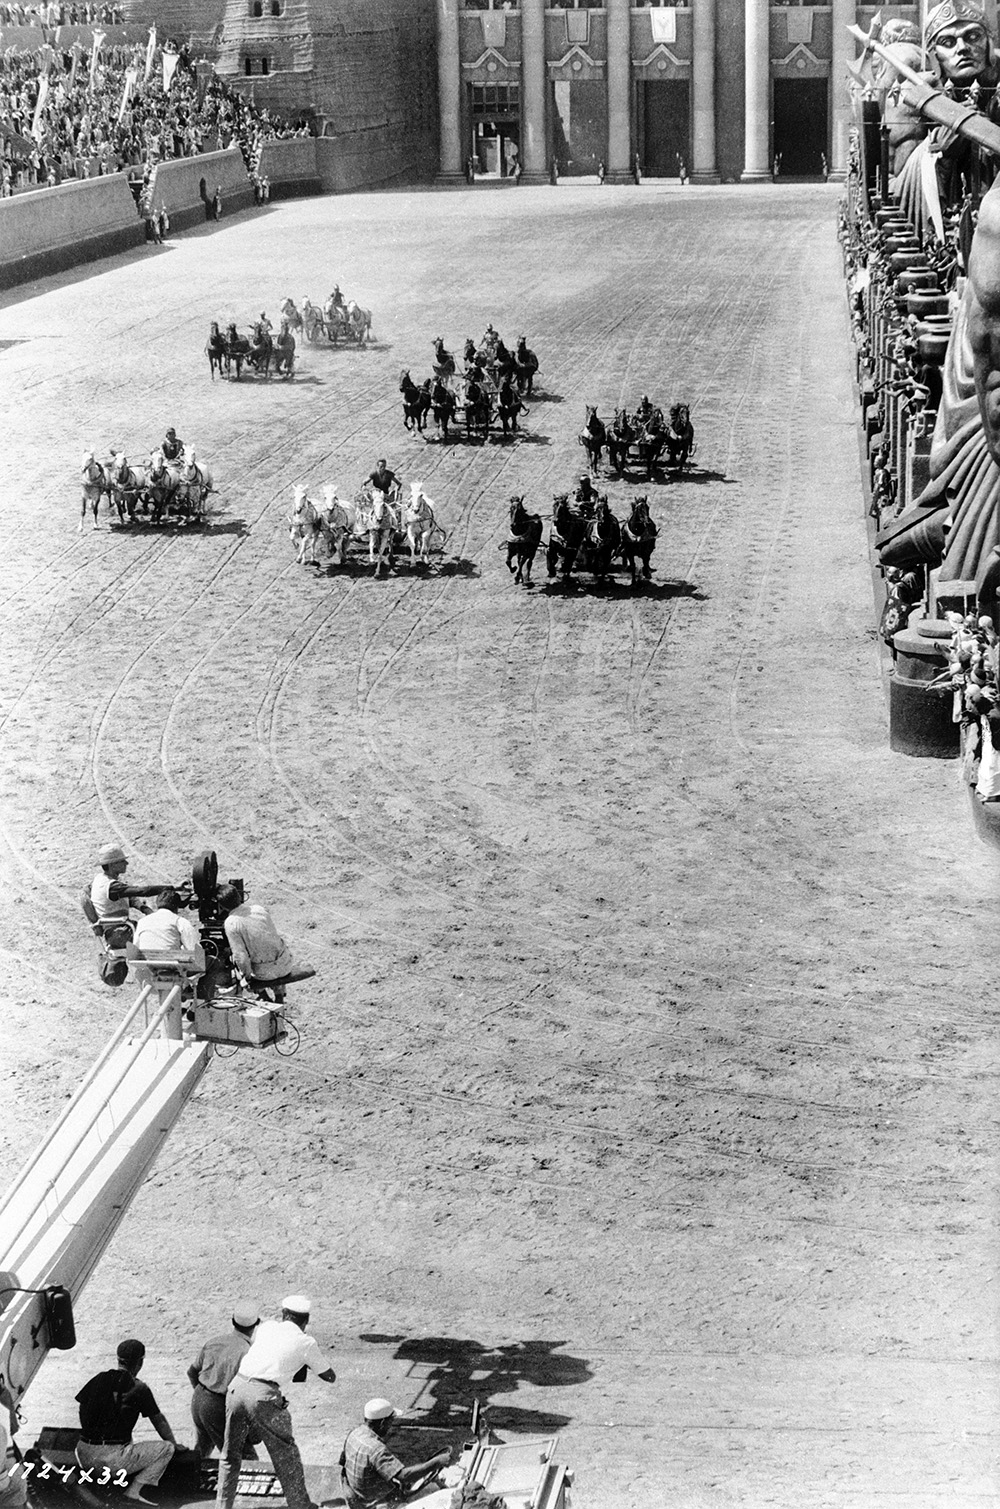 Chariot race in Ben-Hur (1959)